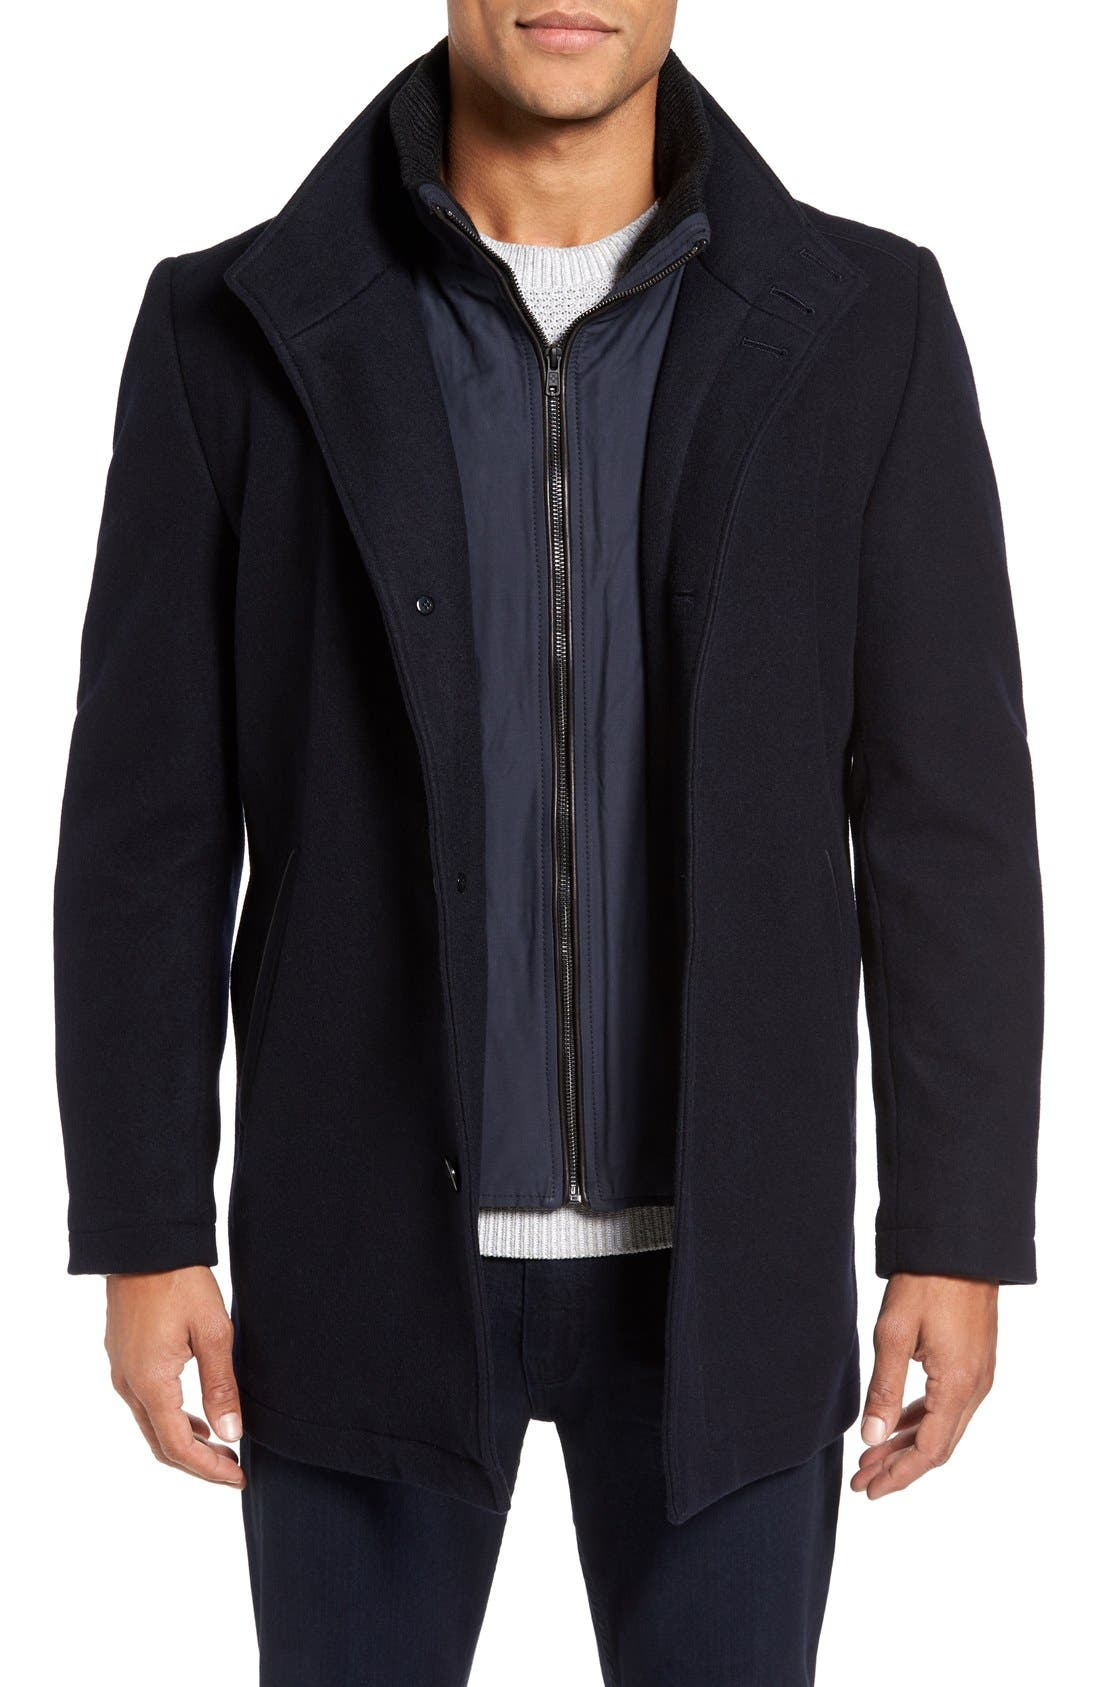 VINCE CAMUTO Classic Wool Blend Car Coat with Inset Bib, Main, color, NAVY